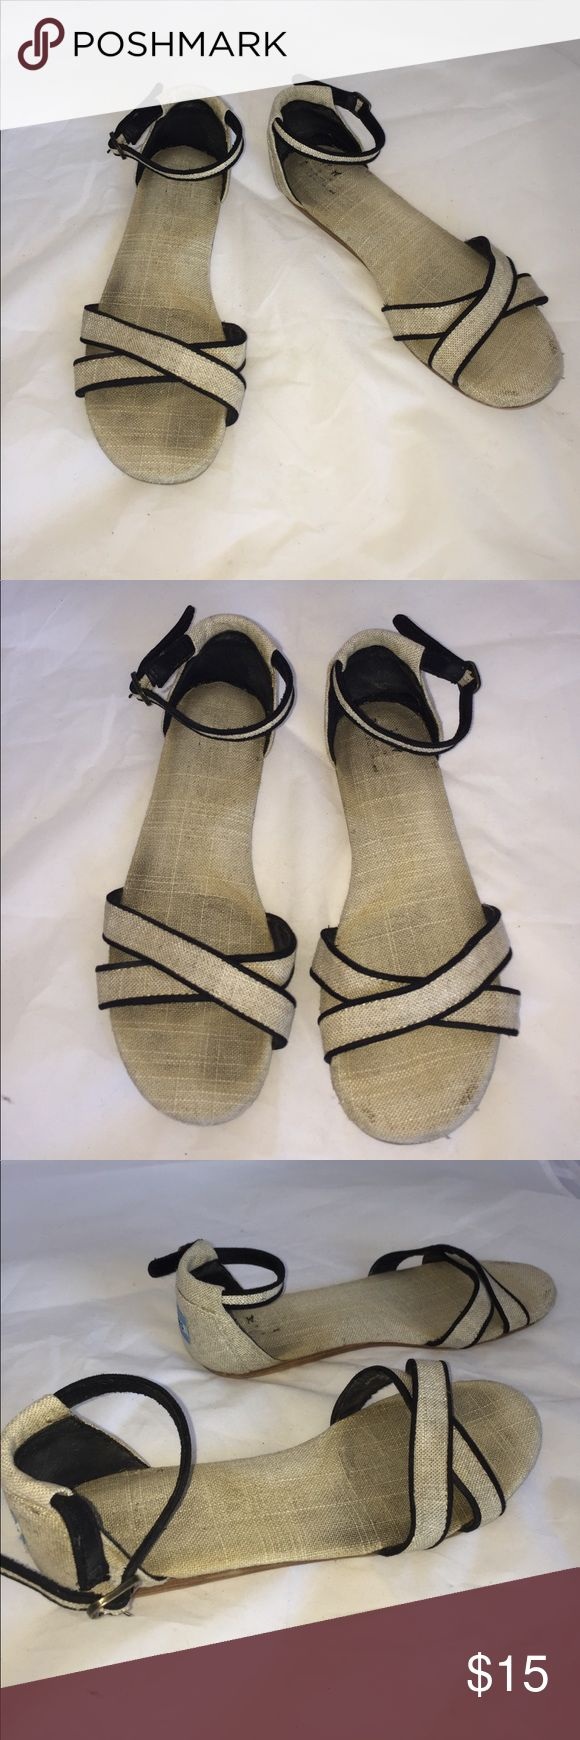 Canvas Tan & Black TOMS open Toe sandals 7.5W These are used TOMS sandals. Just dirty needs a wash or spray/soak in Oxy clean. Very comfortable sandals. Perfect for Now. Women's Size 7.5 Toms Shoes Sandals